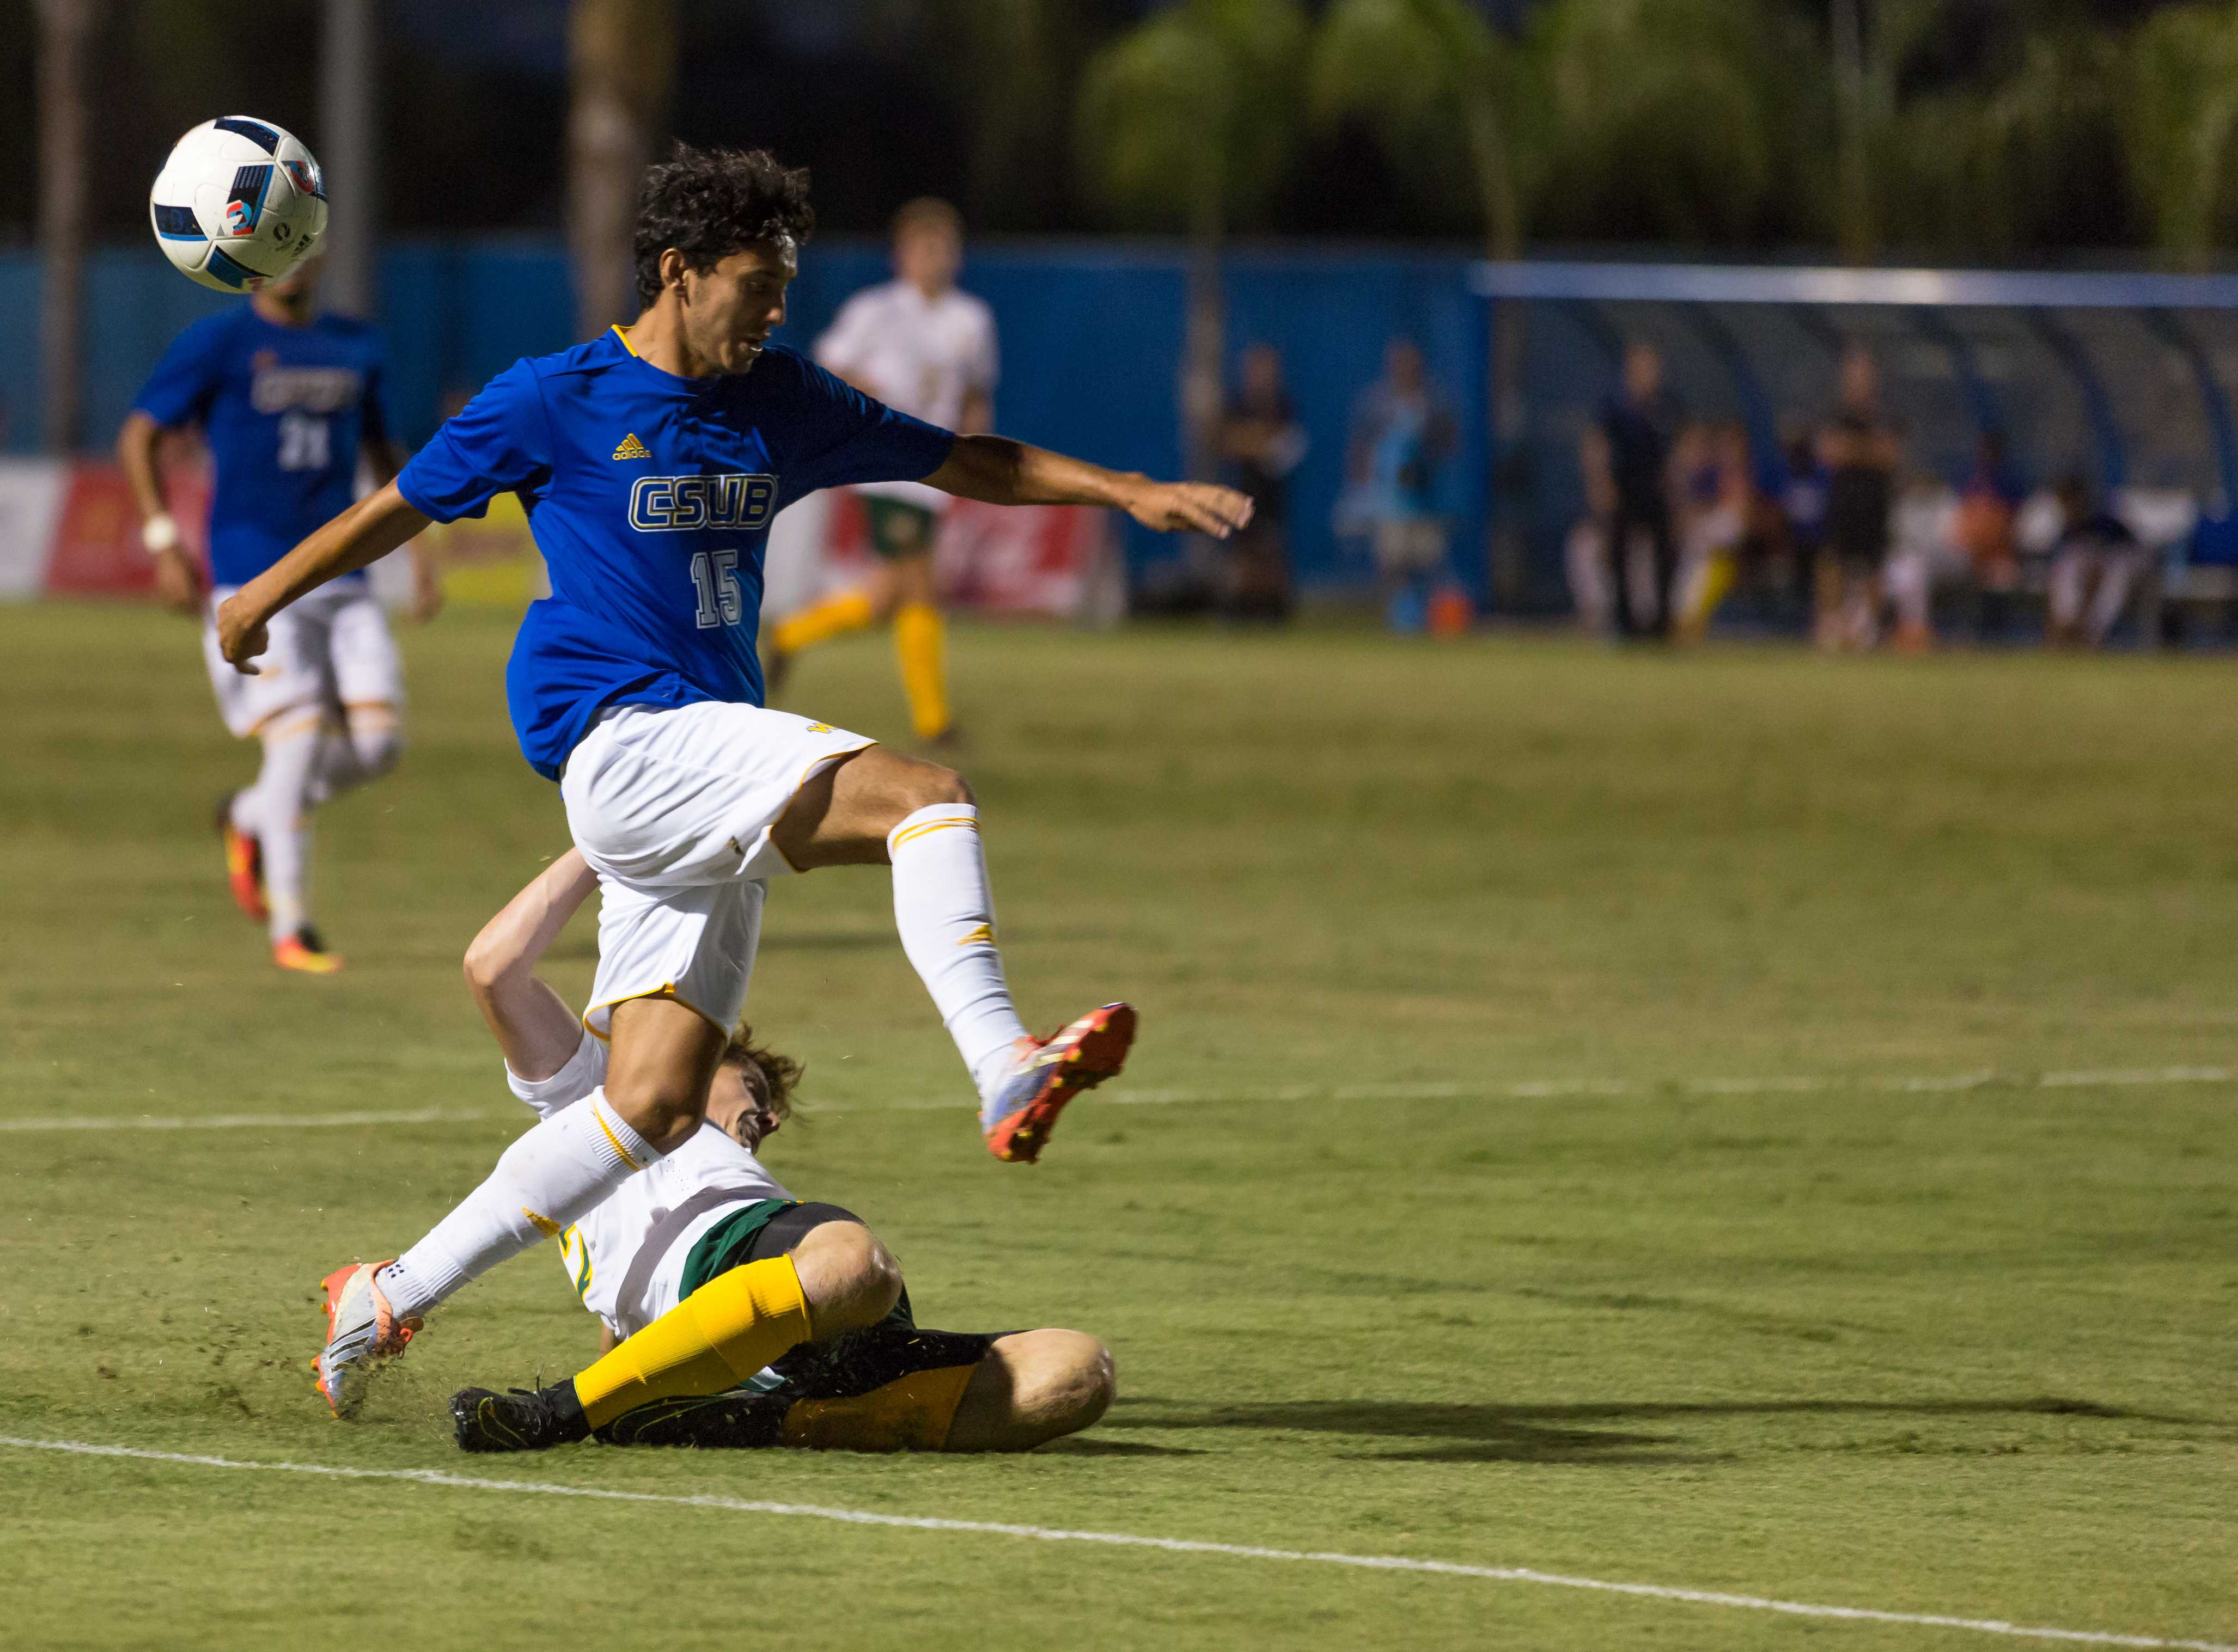 Result slips past CSUB late in game